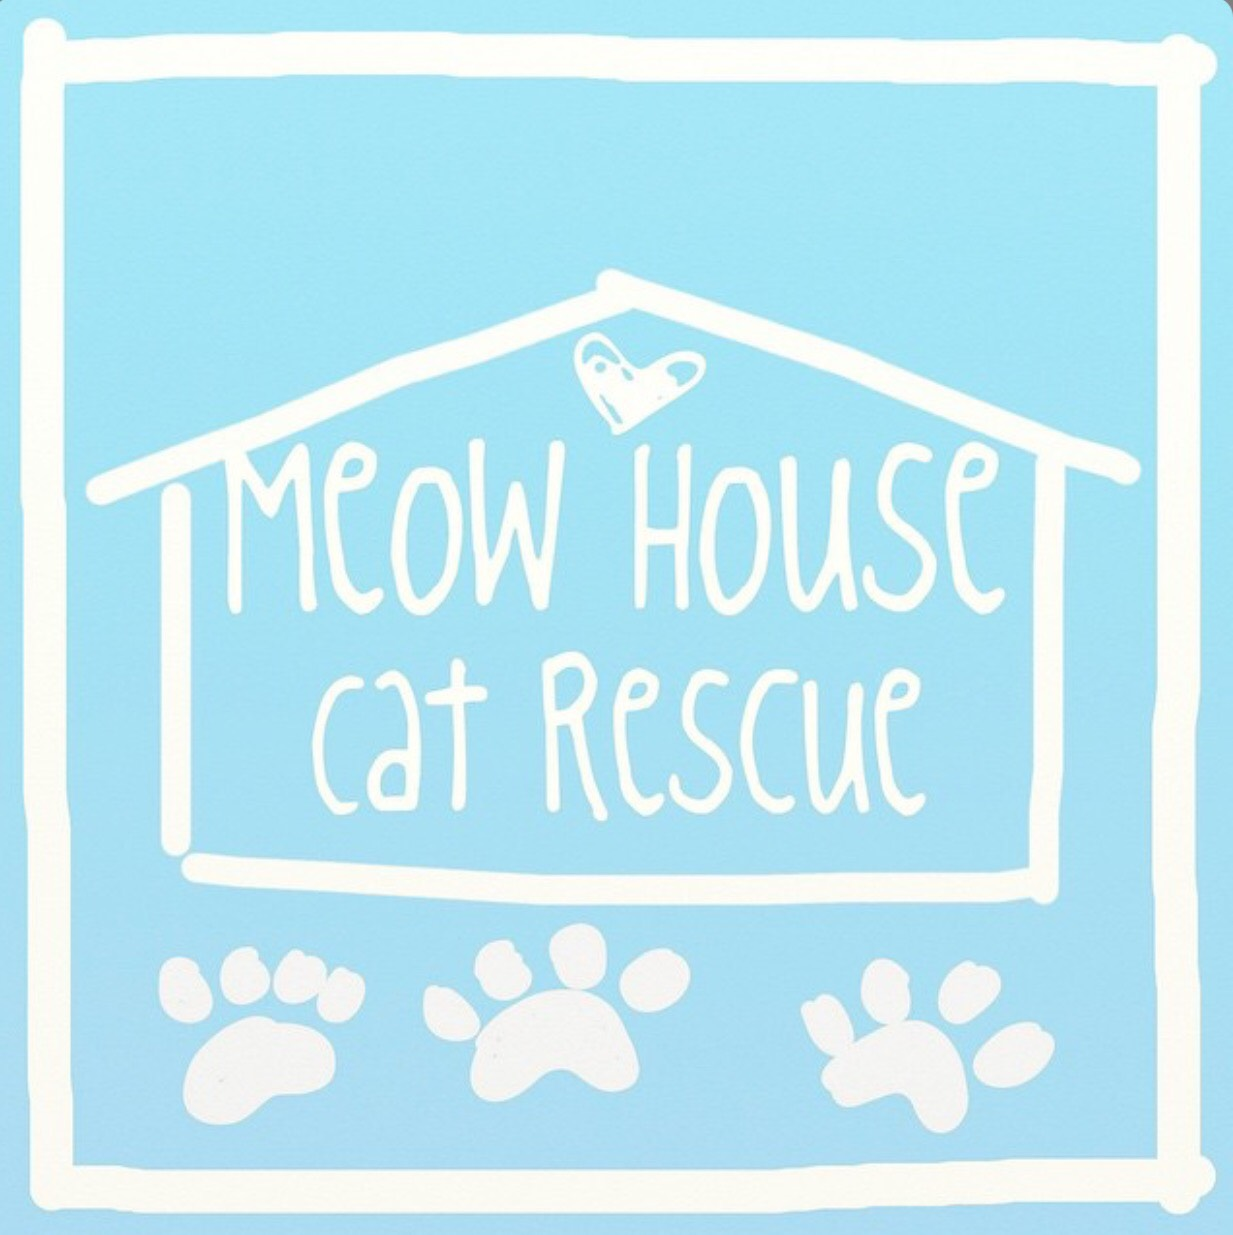 Meow House Cat Rescue